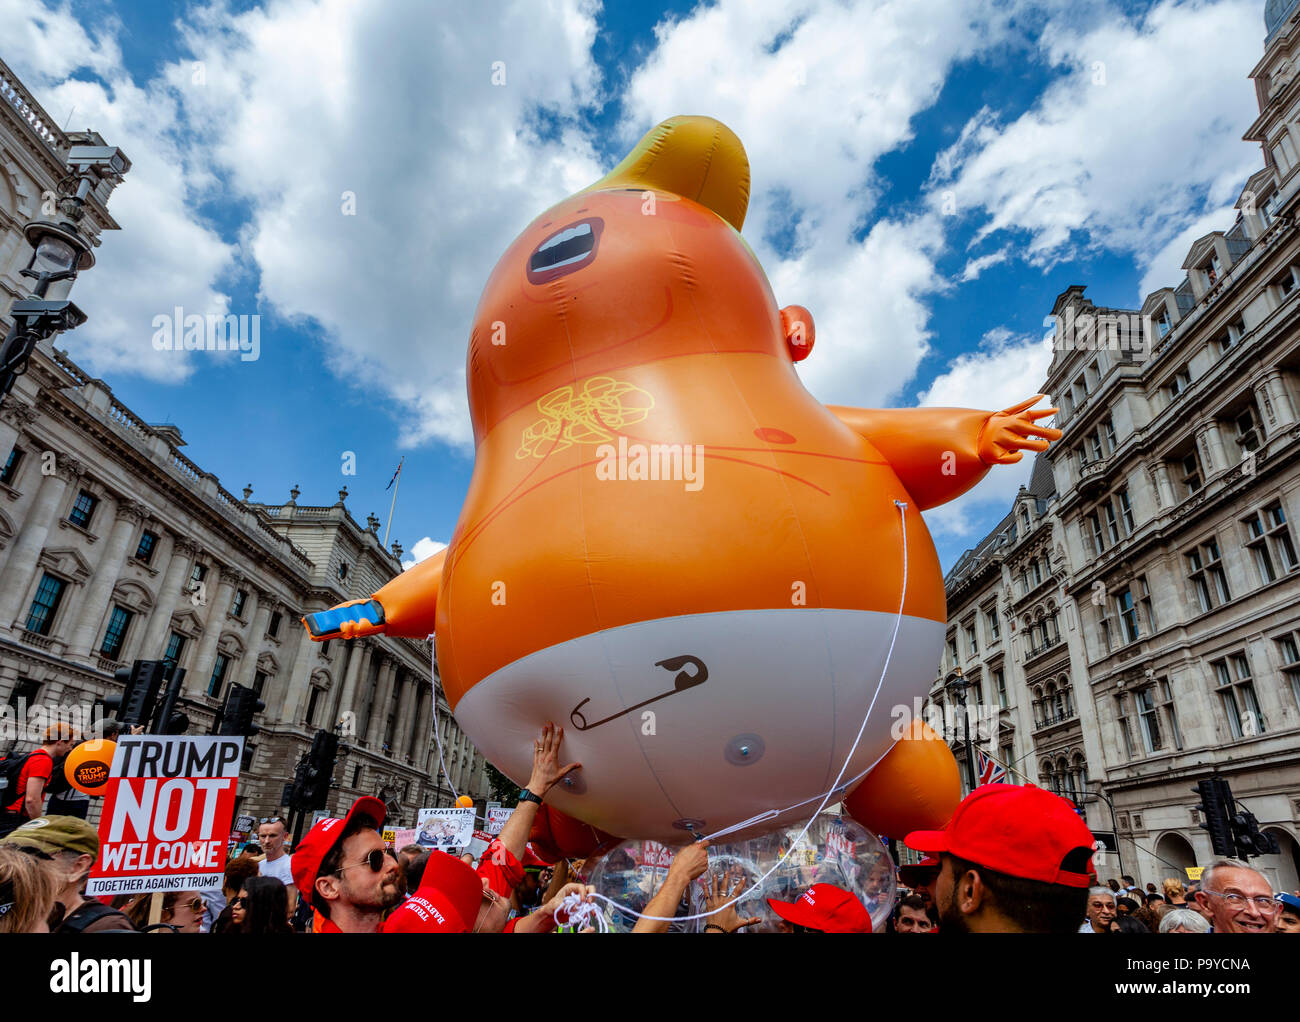 Anti Trump Protestors Carry An 'Angry Baby' Inflatable Blimp Mocking The President Through The Streets Of Central London, London, England - Stock Image